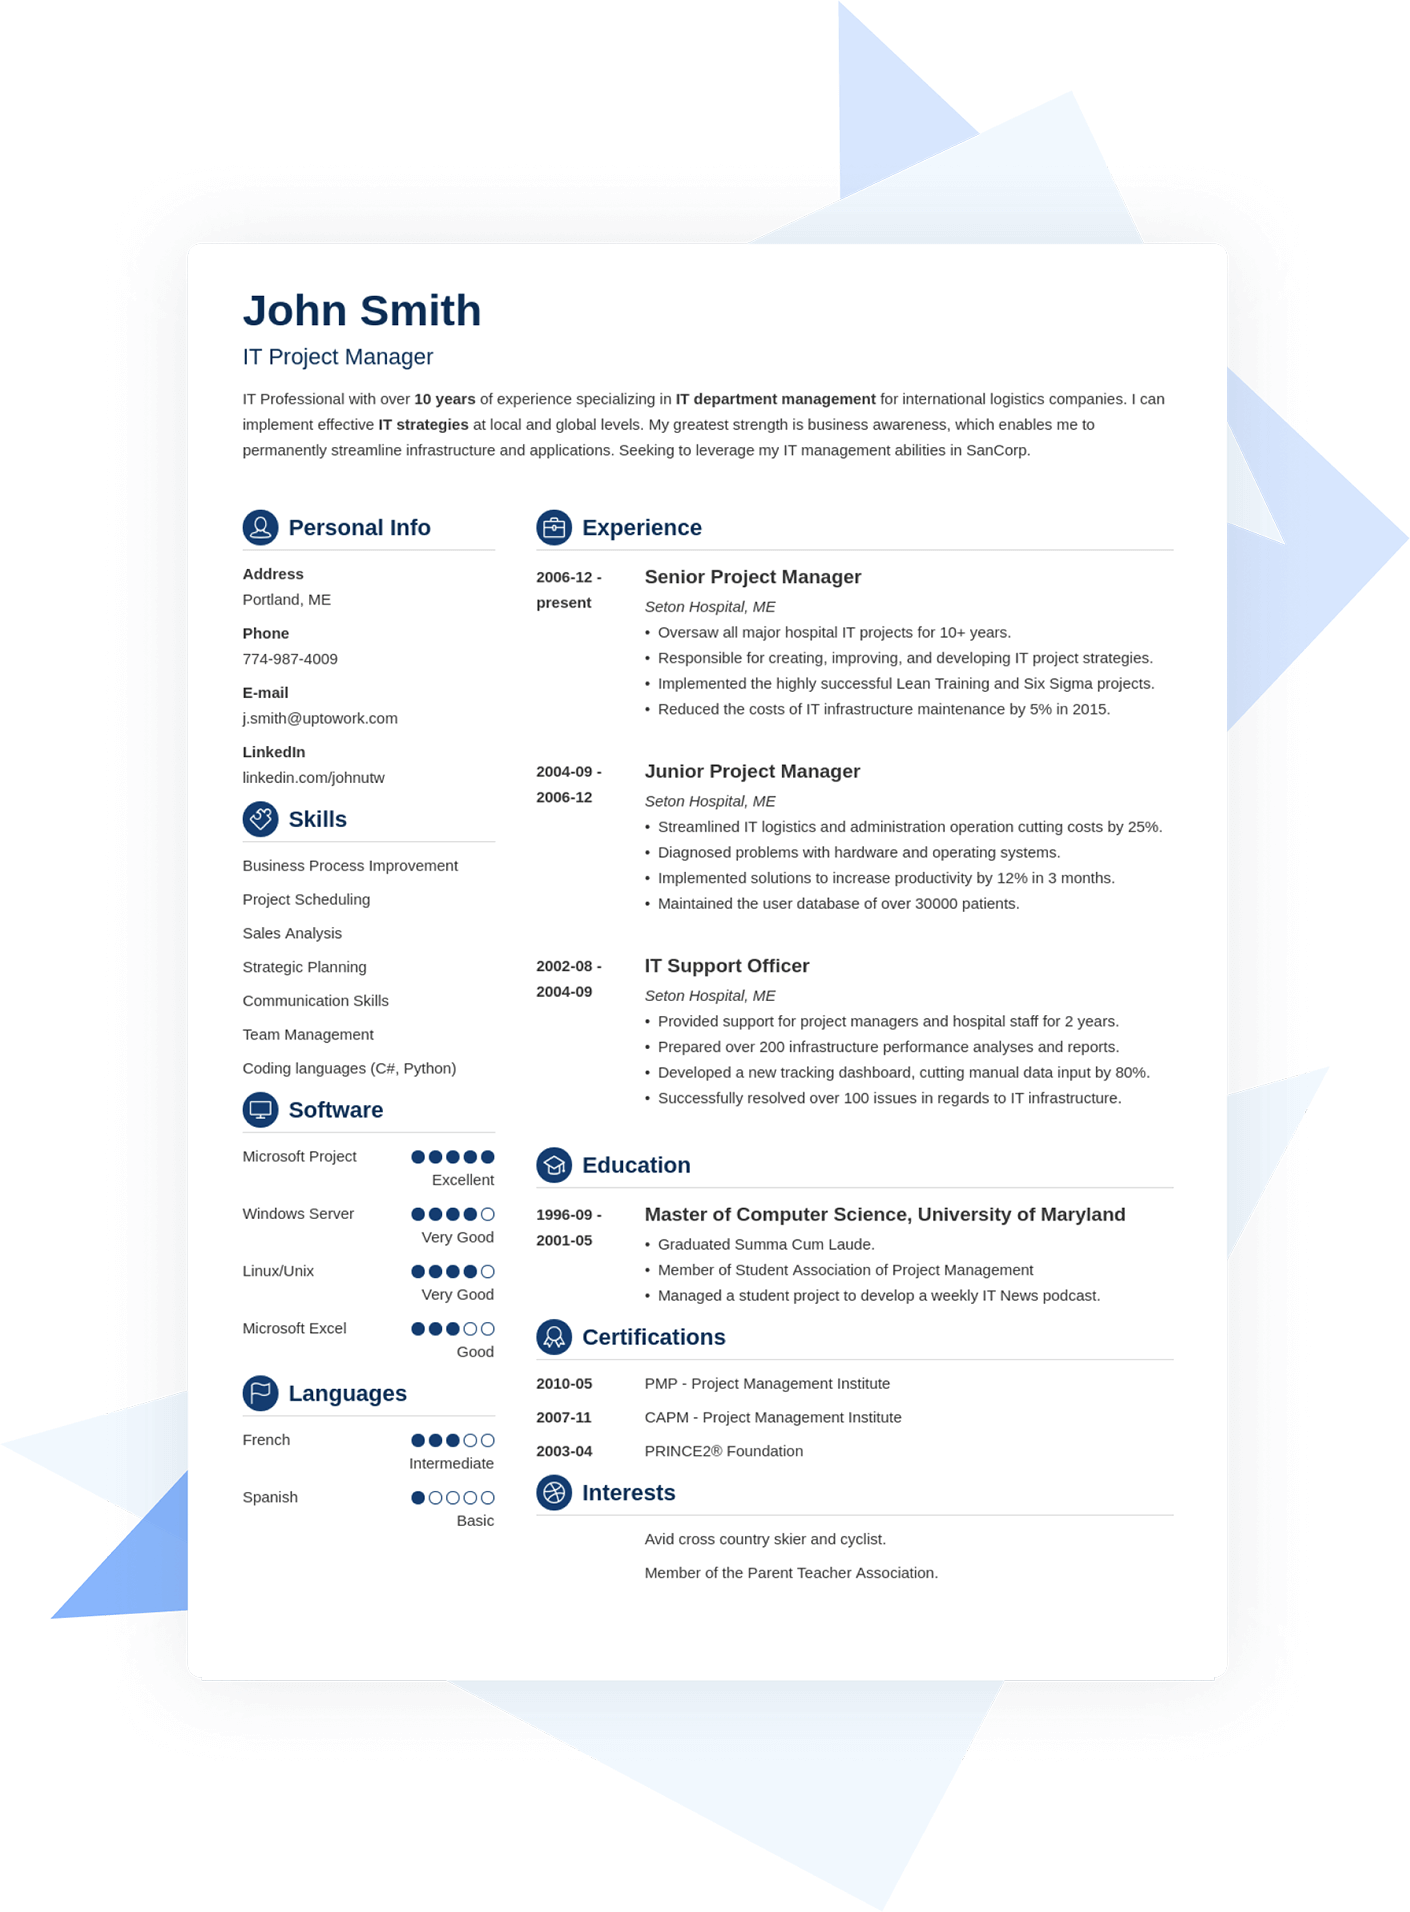 Example of a Resume with an explanation